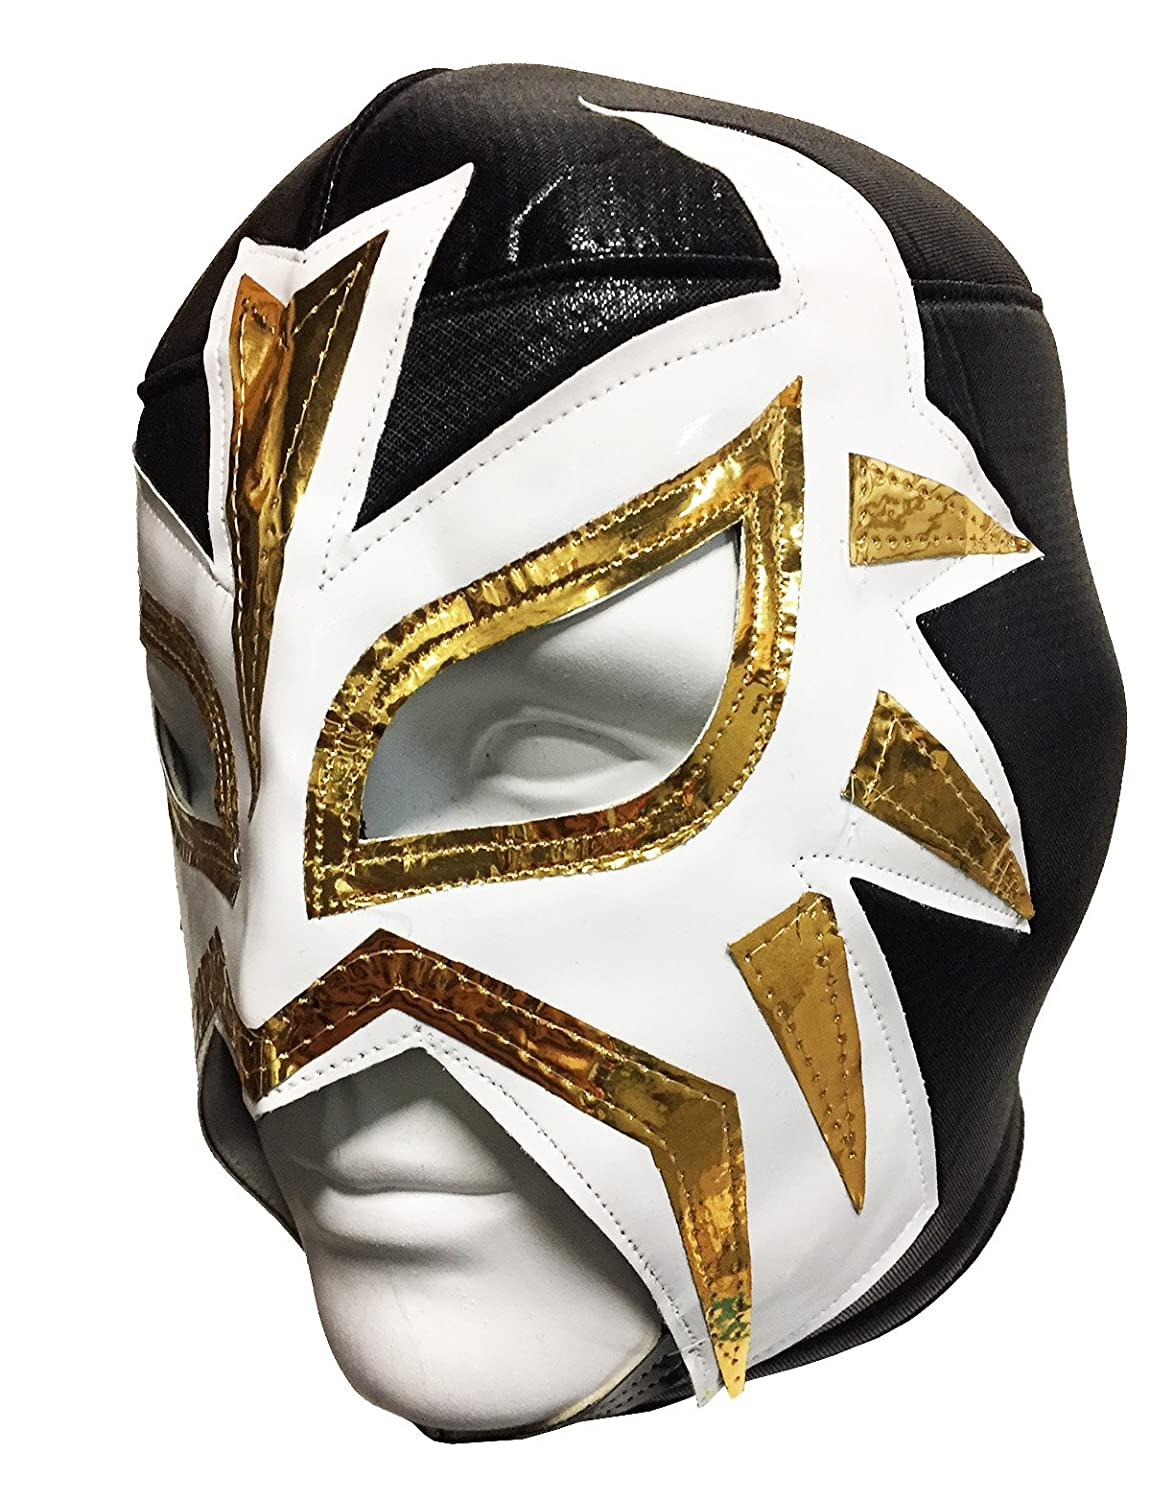 Amazon.com : LA MASCARA Adult Lucha Libre Wrestling Mask (pro-fit) Costume Wear - BLACK : Airsoft Masks : Sports & Outdoors